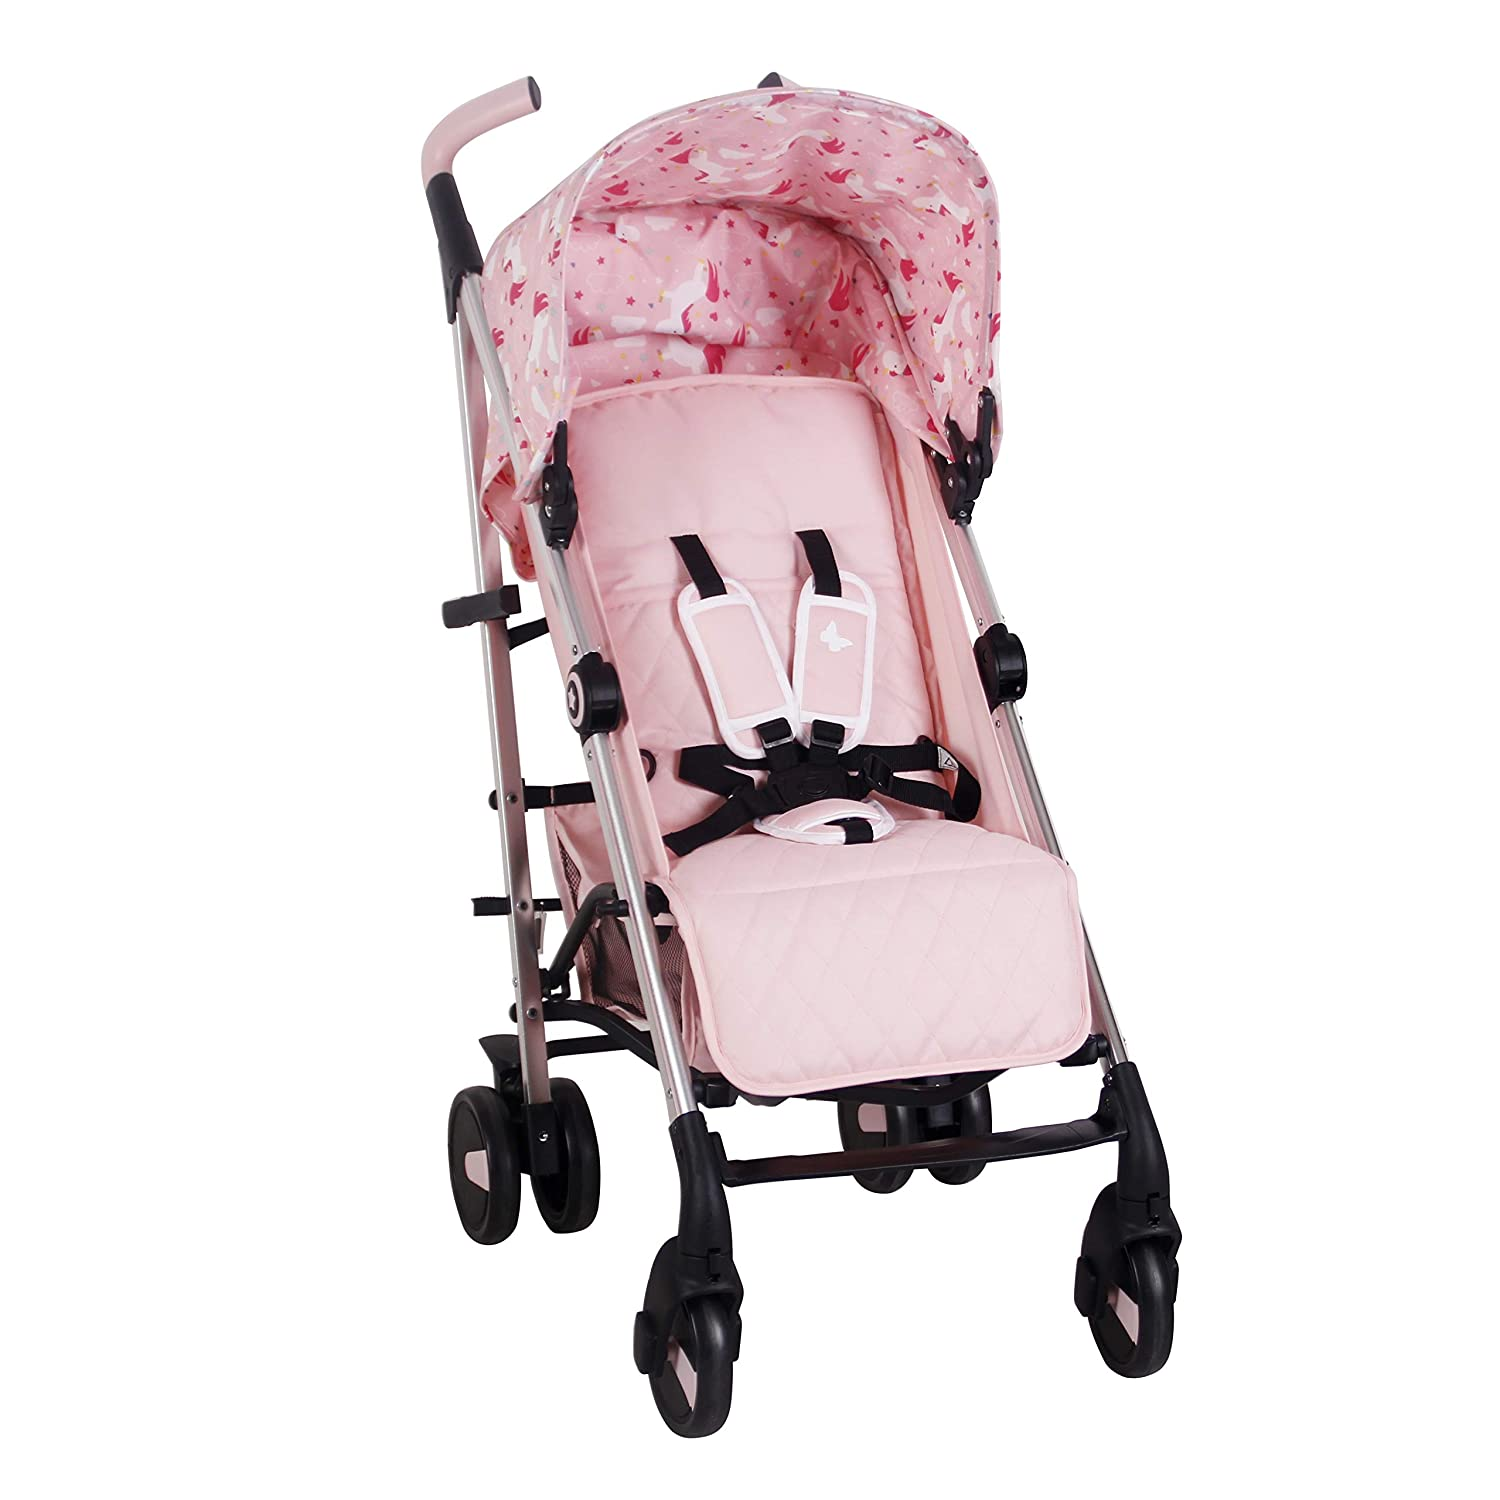 My Babiie US51 Believe by Katie Piper Unicorns Stroller – Suitable from Birth to 33lbs